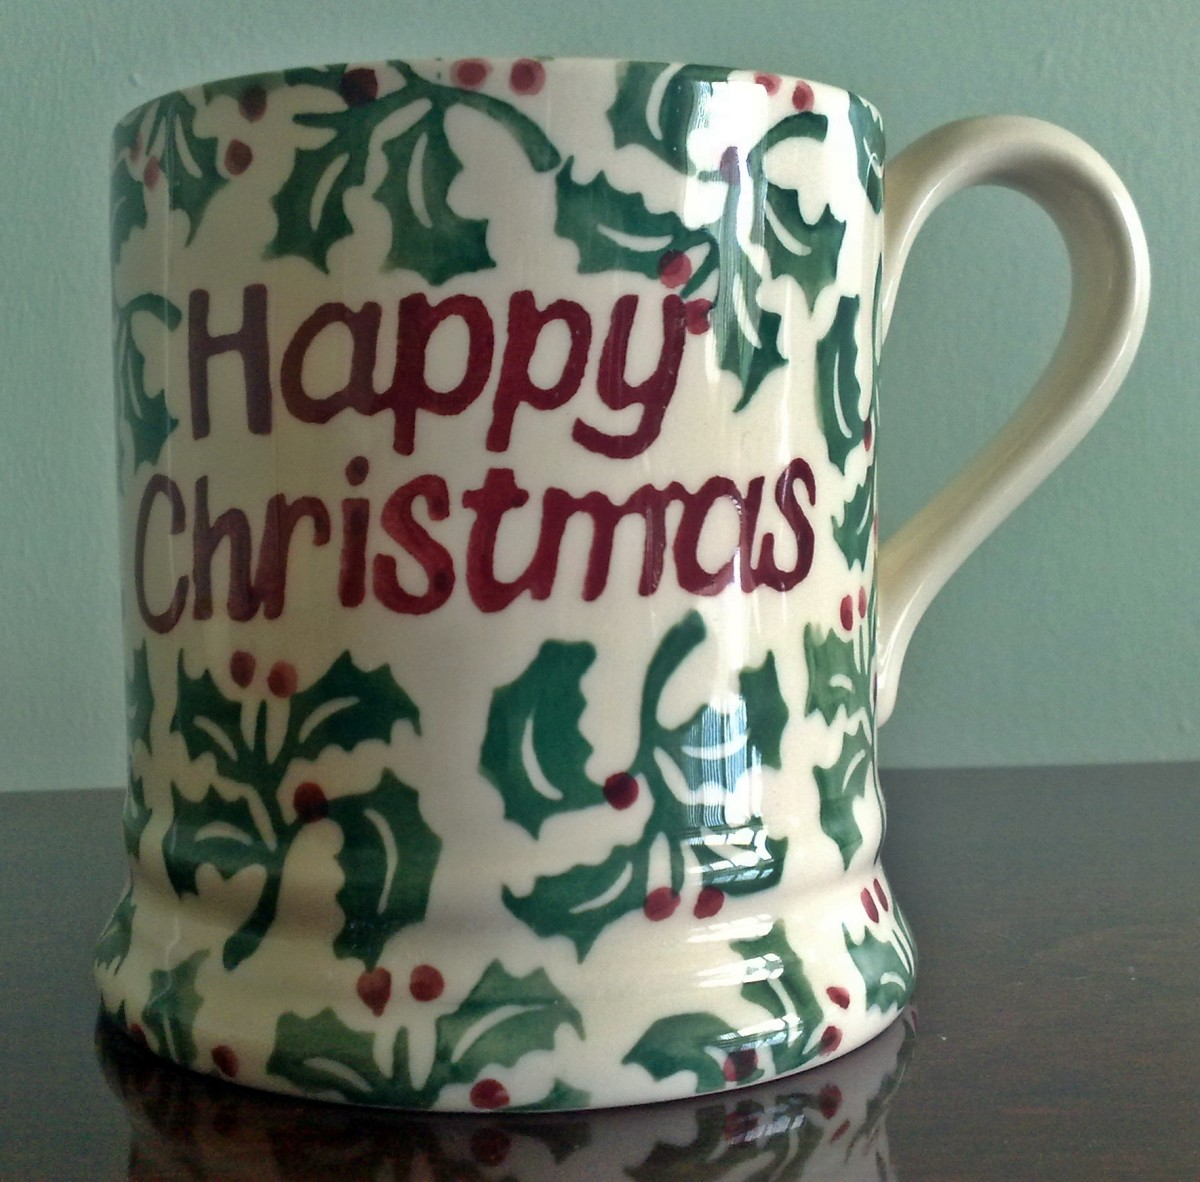 An Emma Bridgewater spongeware mug bought last week at a car boot sale for 75p, sold on eBay for GBP 21